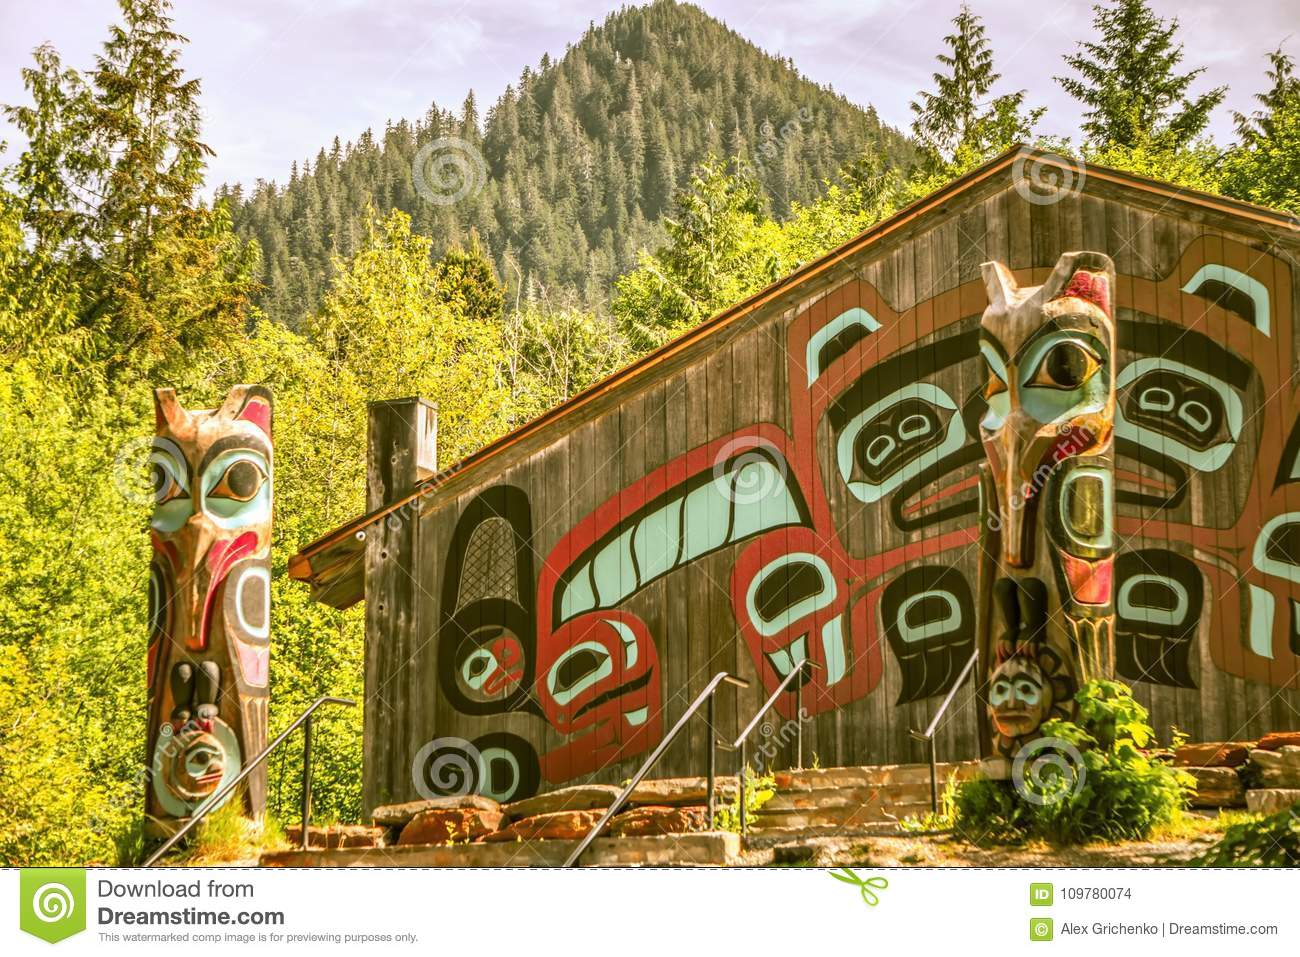 Totems art and carvings at saxman village in ketchikan alaska